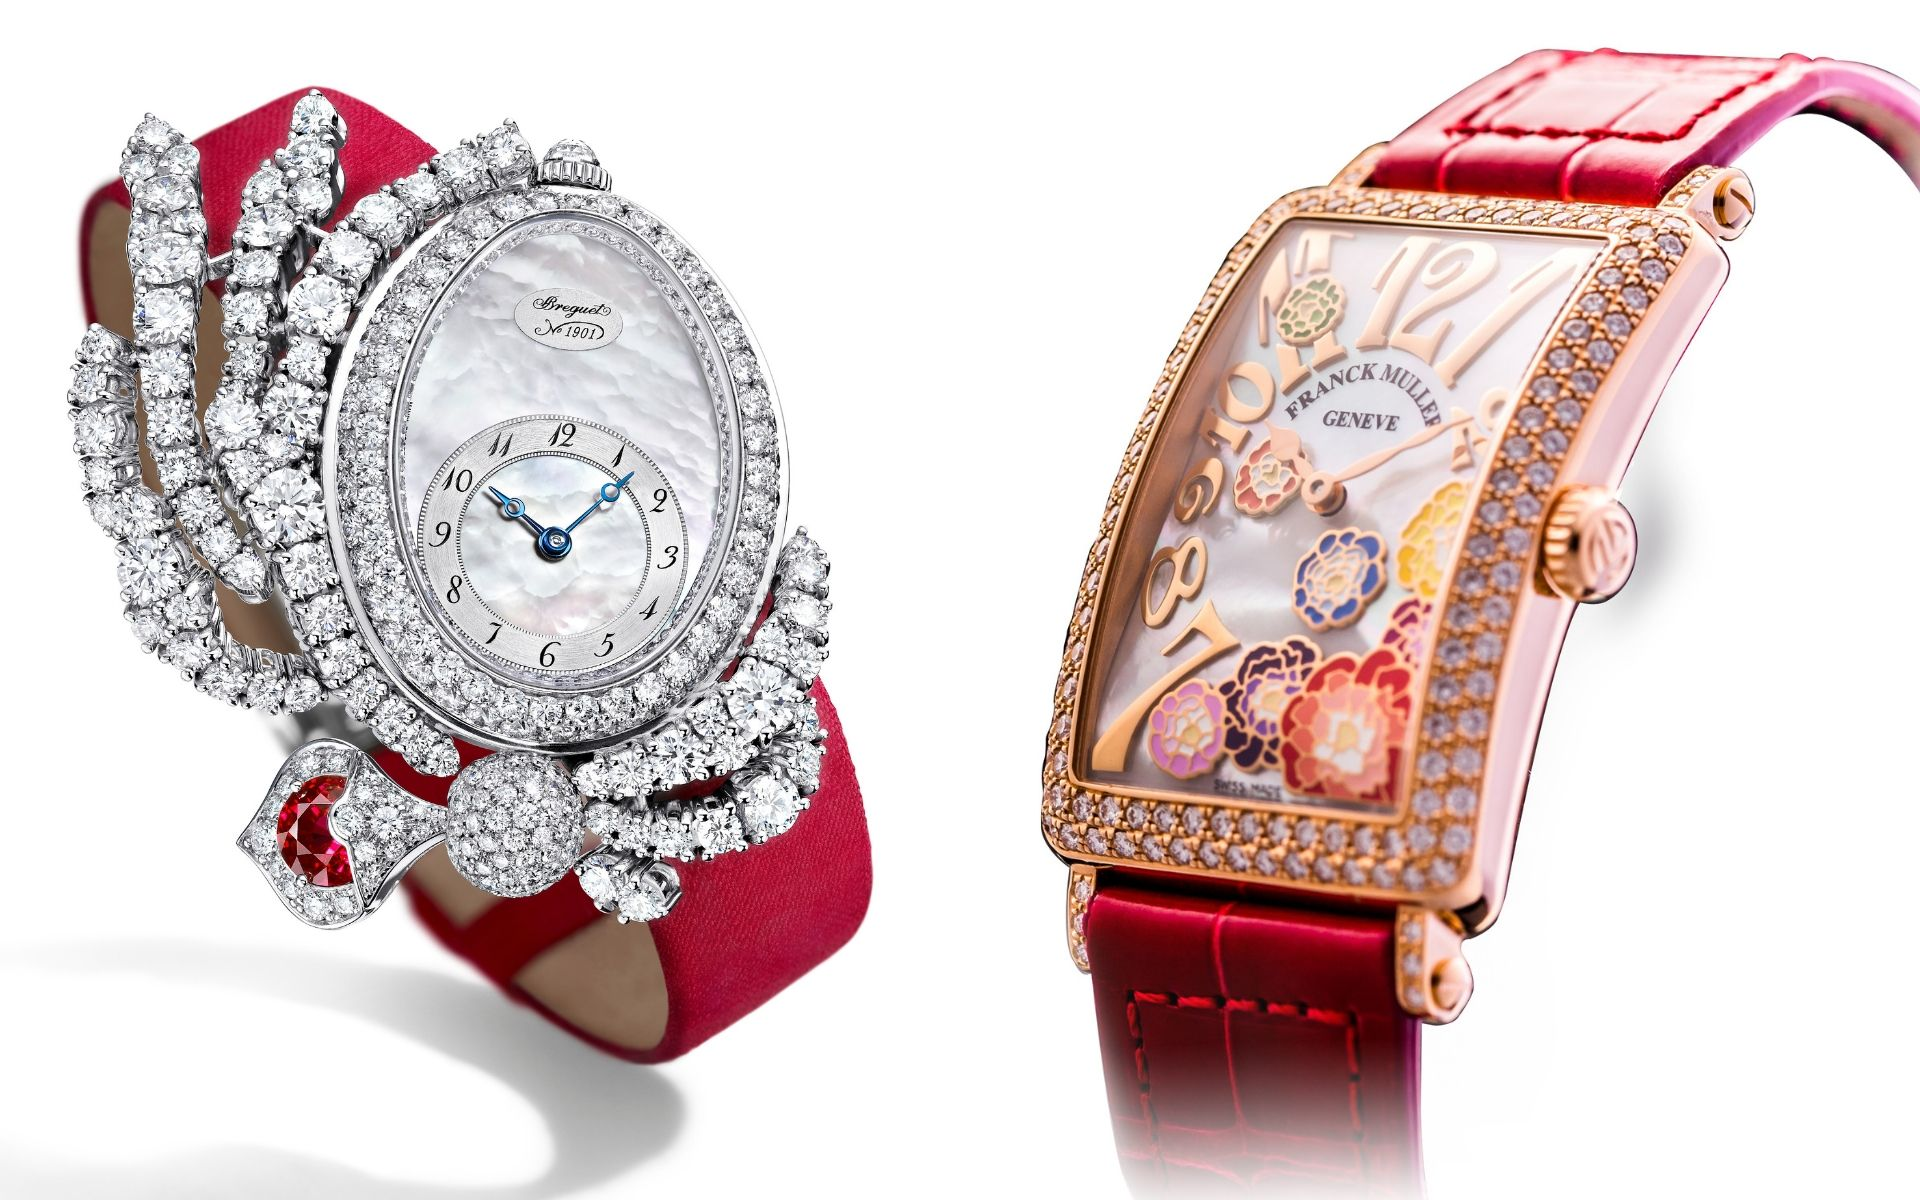 Usher In The Lunar New Year With These Watches In Auspicious Red